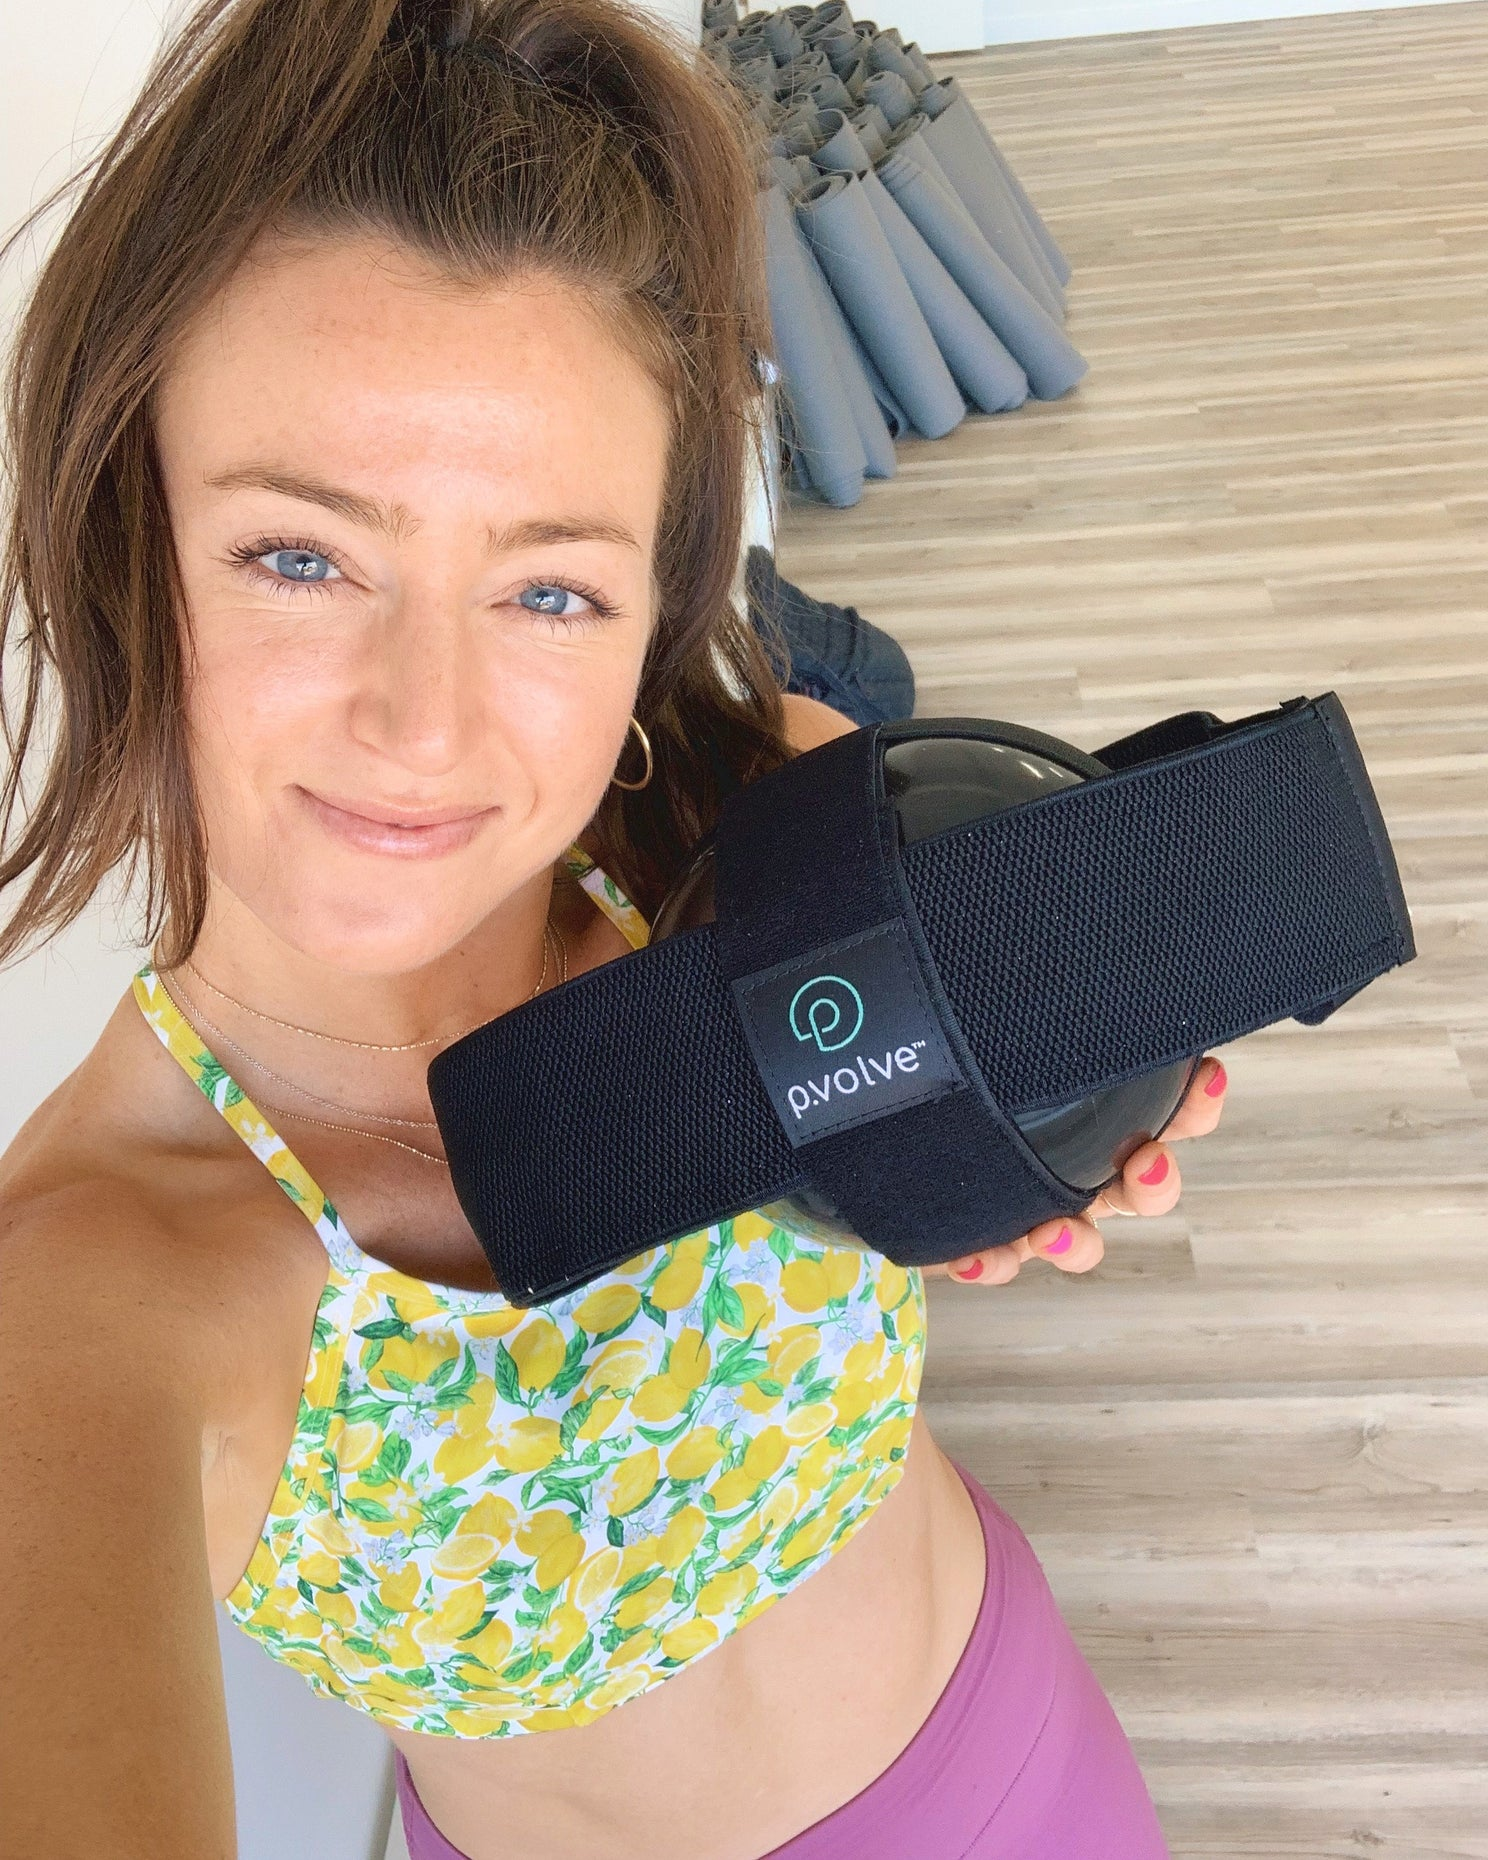 Studio Spotlight: A Q&A with P.volve Master Trainer Hanna